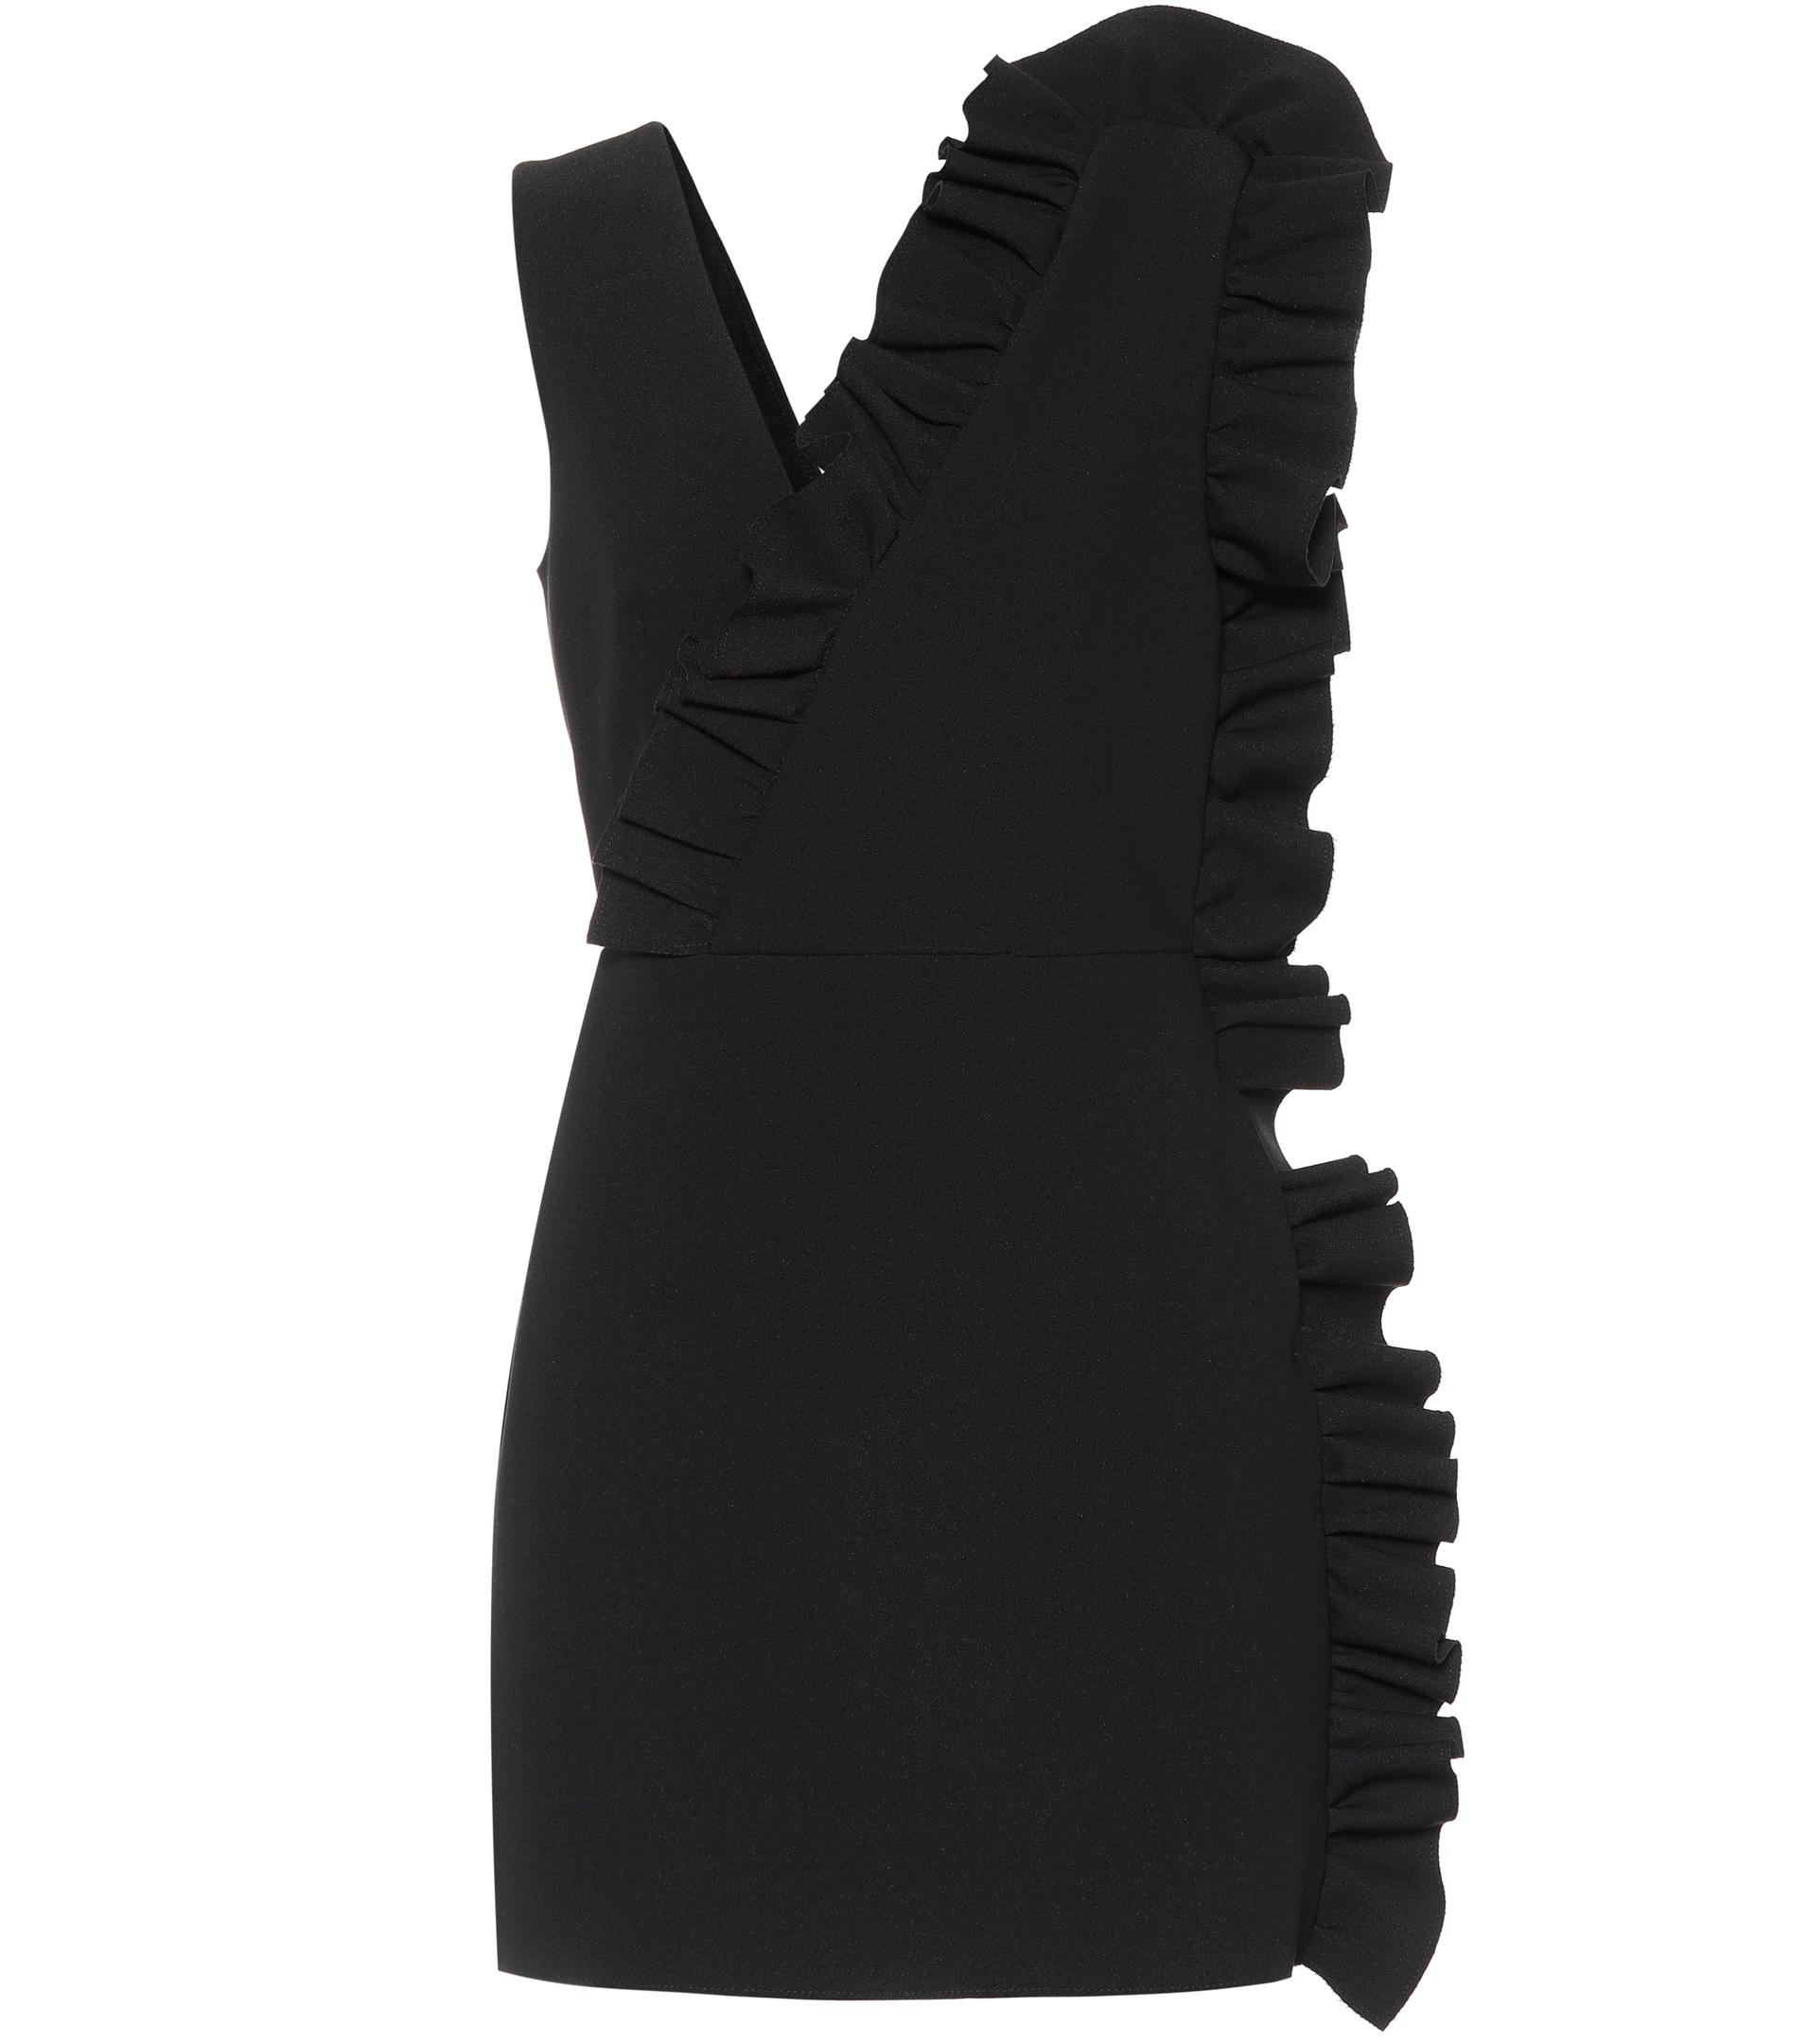 Black crepe mini dress Msgm Clearance For Sale Outlet Geniue Stockist Cheap Sale Popular Clearance Order QG7a9